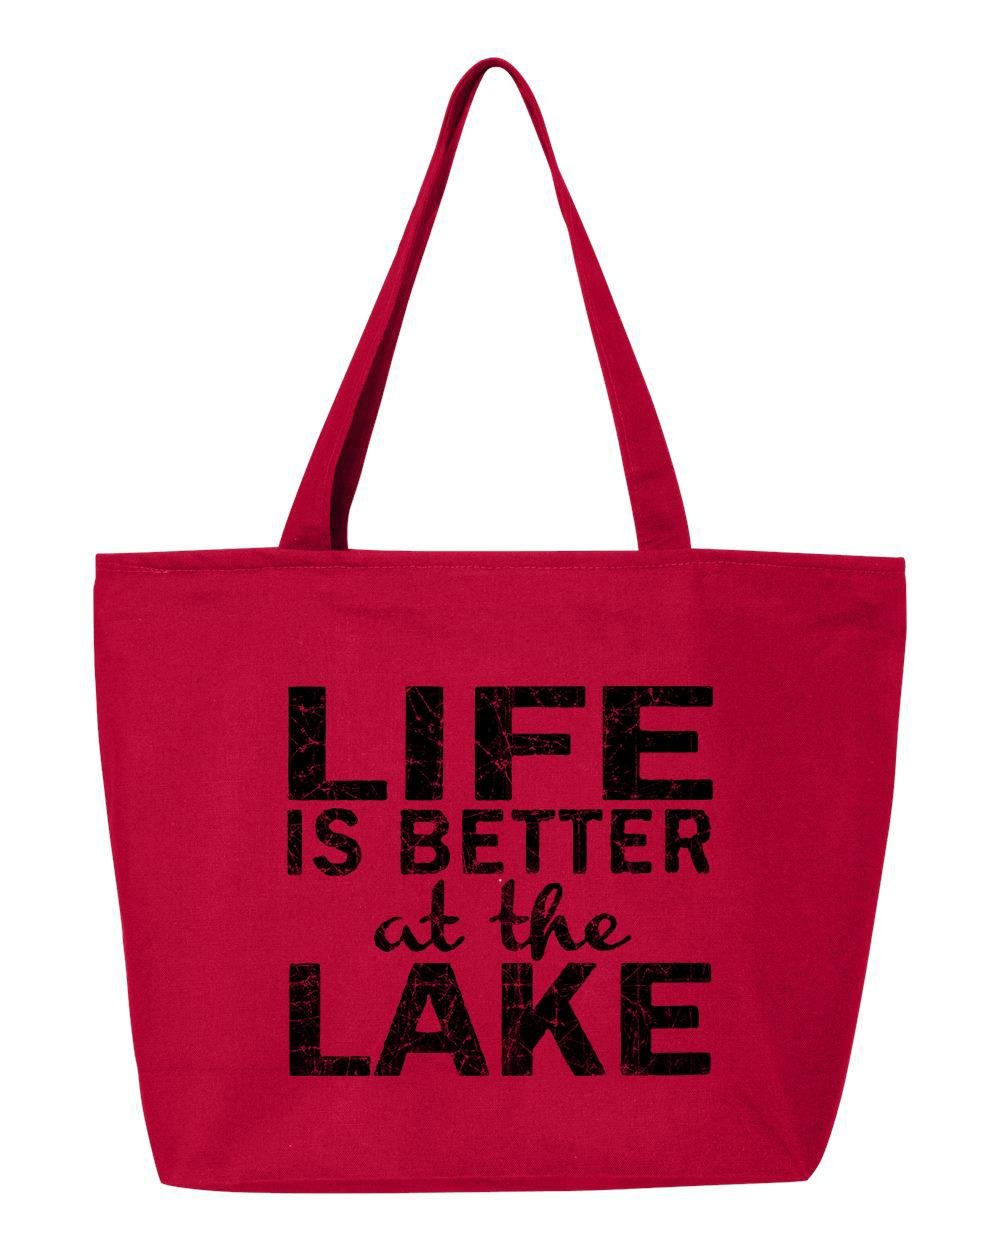 shop4ever Life Is Better At The LakeブラックHeavy Canvas Tote with Zipper Sayings再利用可能なショッピングバッグ12 oz Zip 25 oz レッド S4E_1215_LifeLakeBlk_TB_Q611_Red_1 B0713SXRC1 レッド|1 レッド